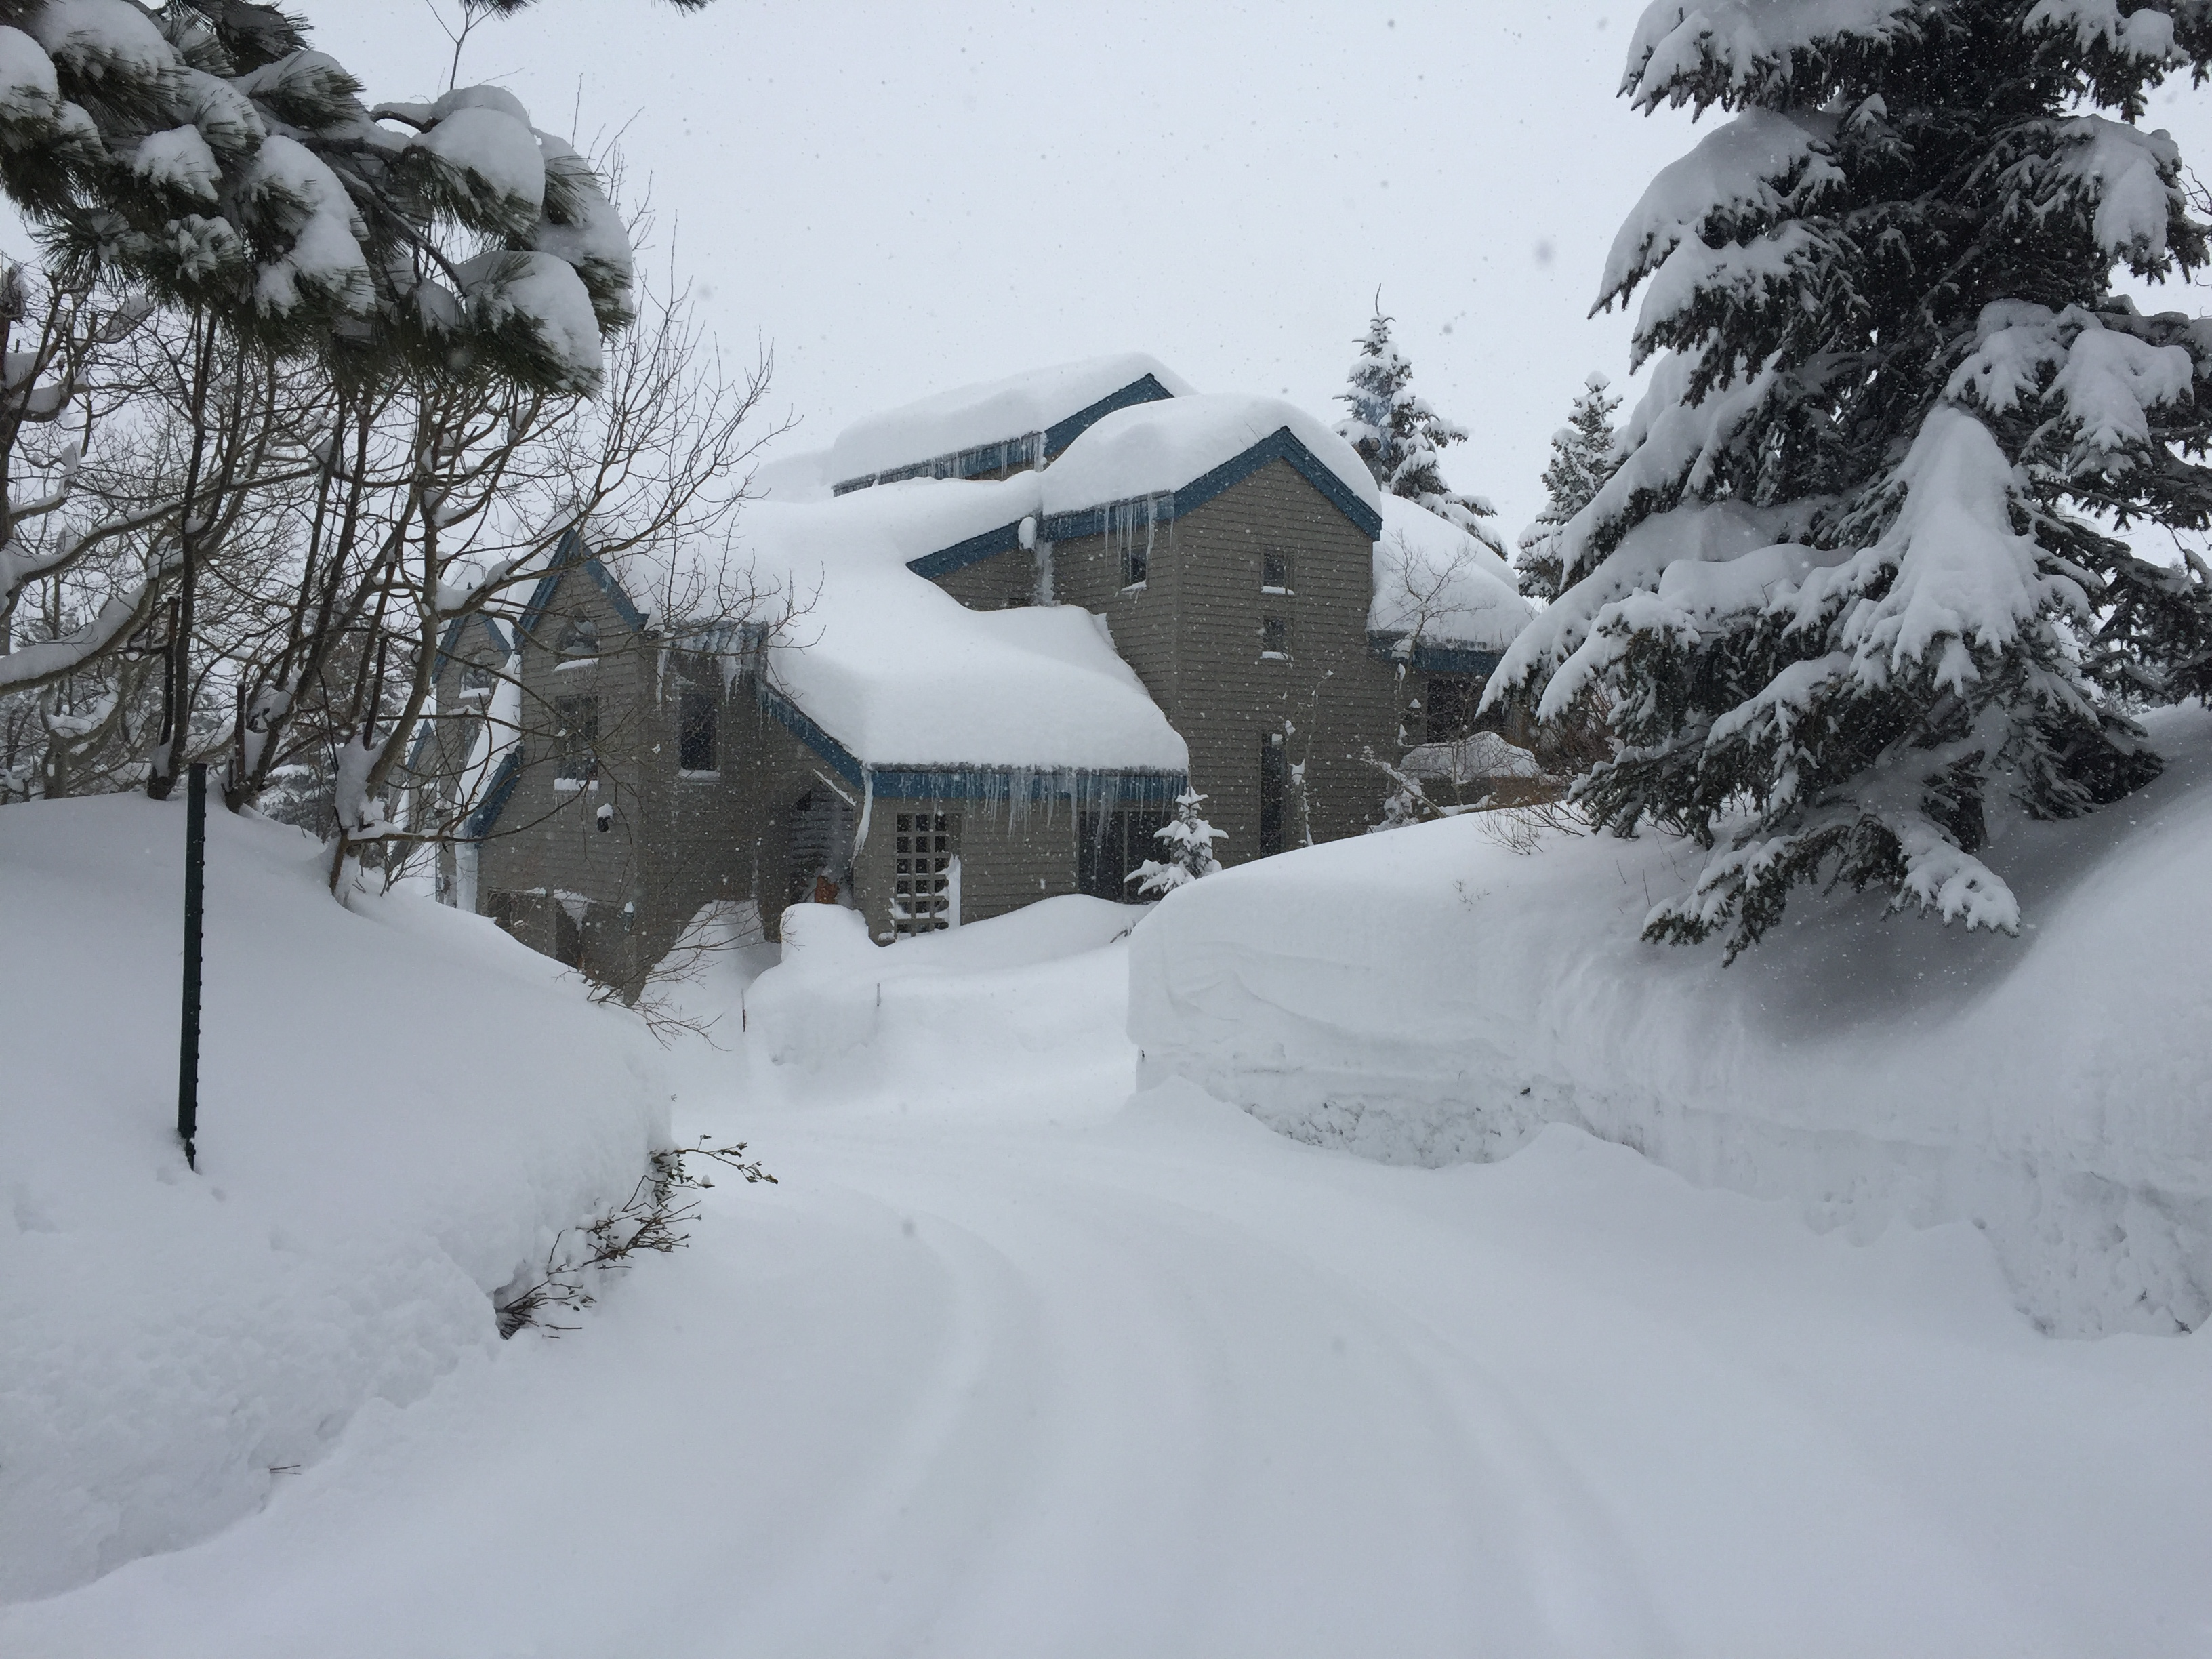 Winter Snow after January 12, 2017 Major Snow Storm